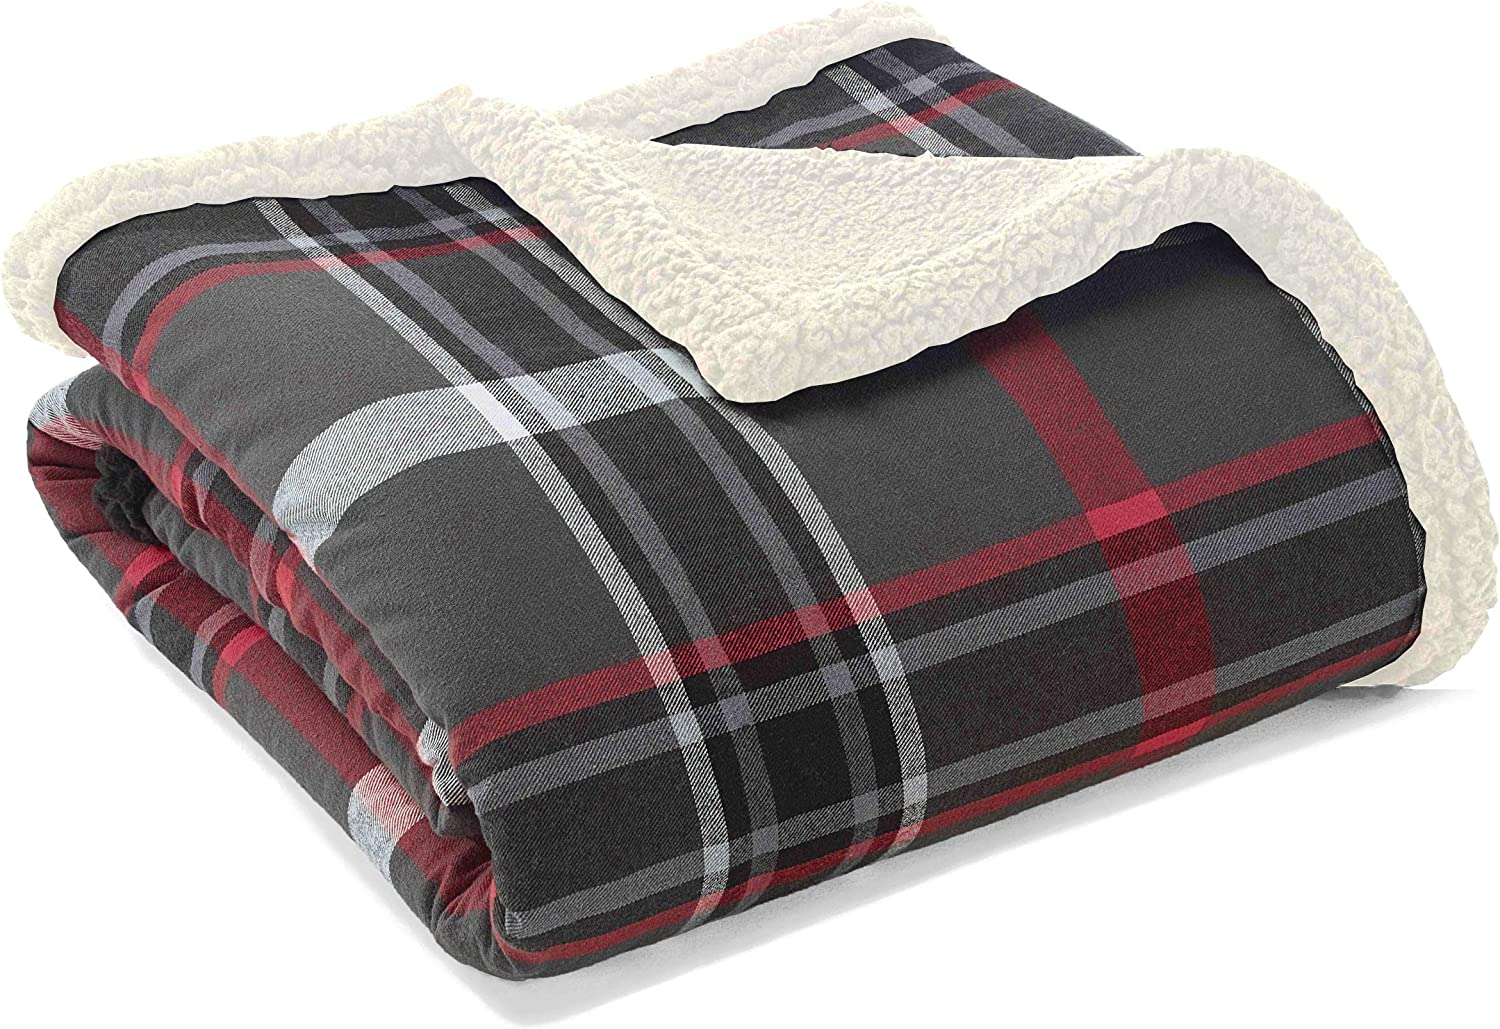 "Eddie Bauer Flannel Winslow Sherpa Fleece Throw, 50"" x 60"", Grey"